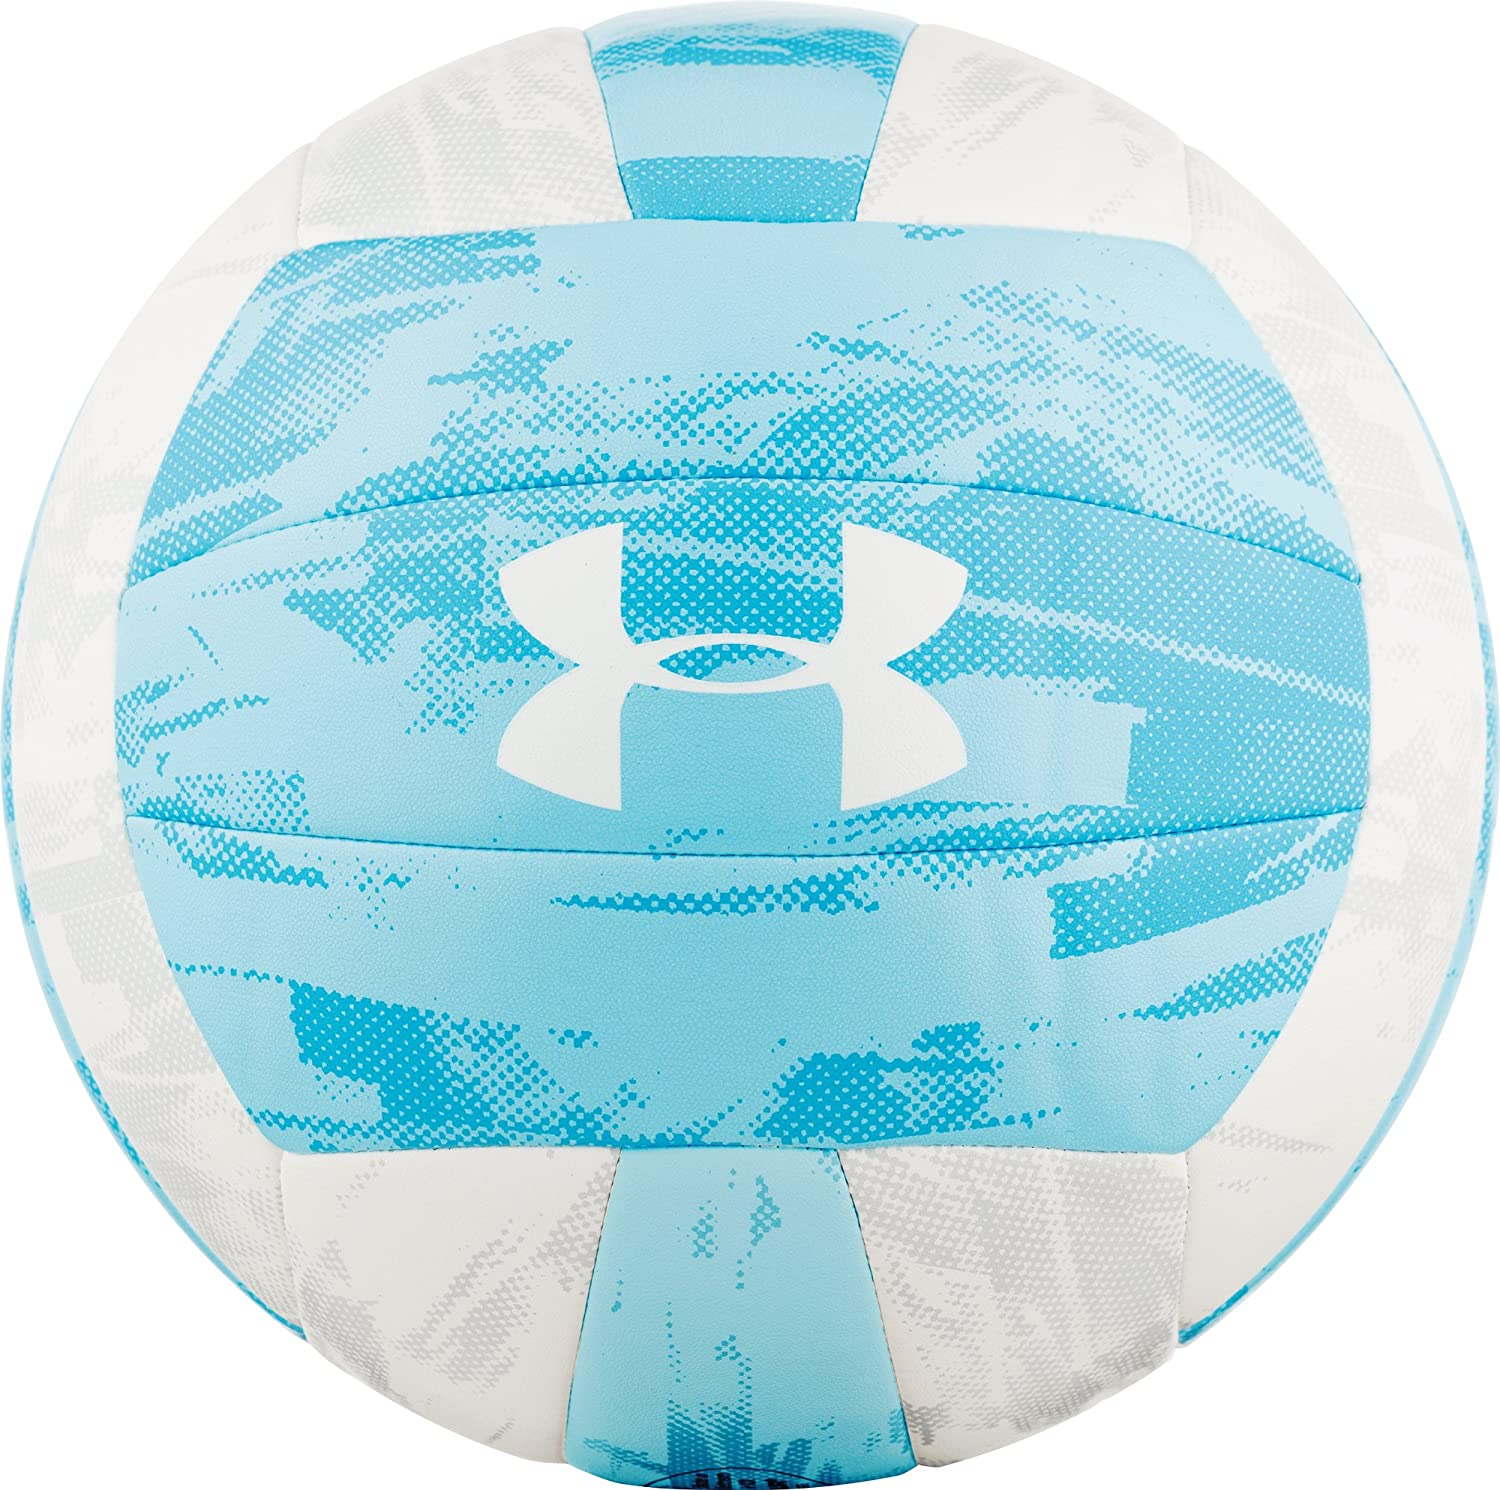 Under Armour 295 Sand/Beach Volleyball PSI 91 Inc. VB 277